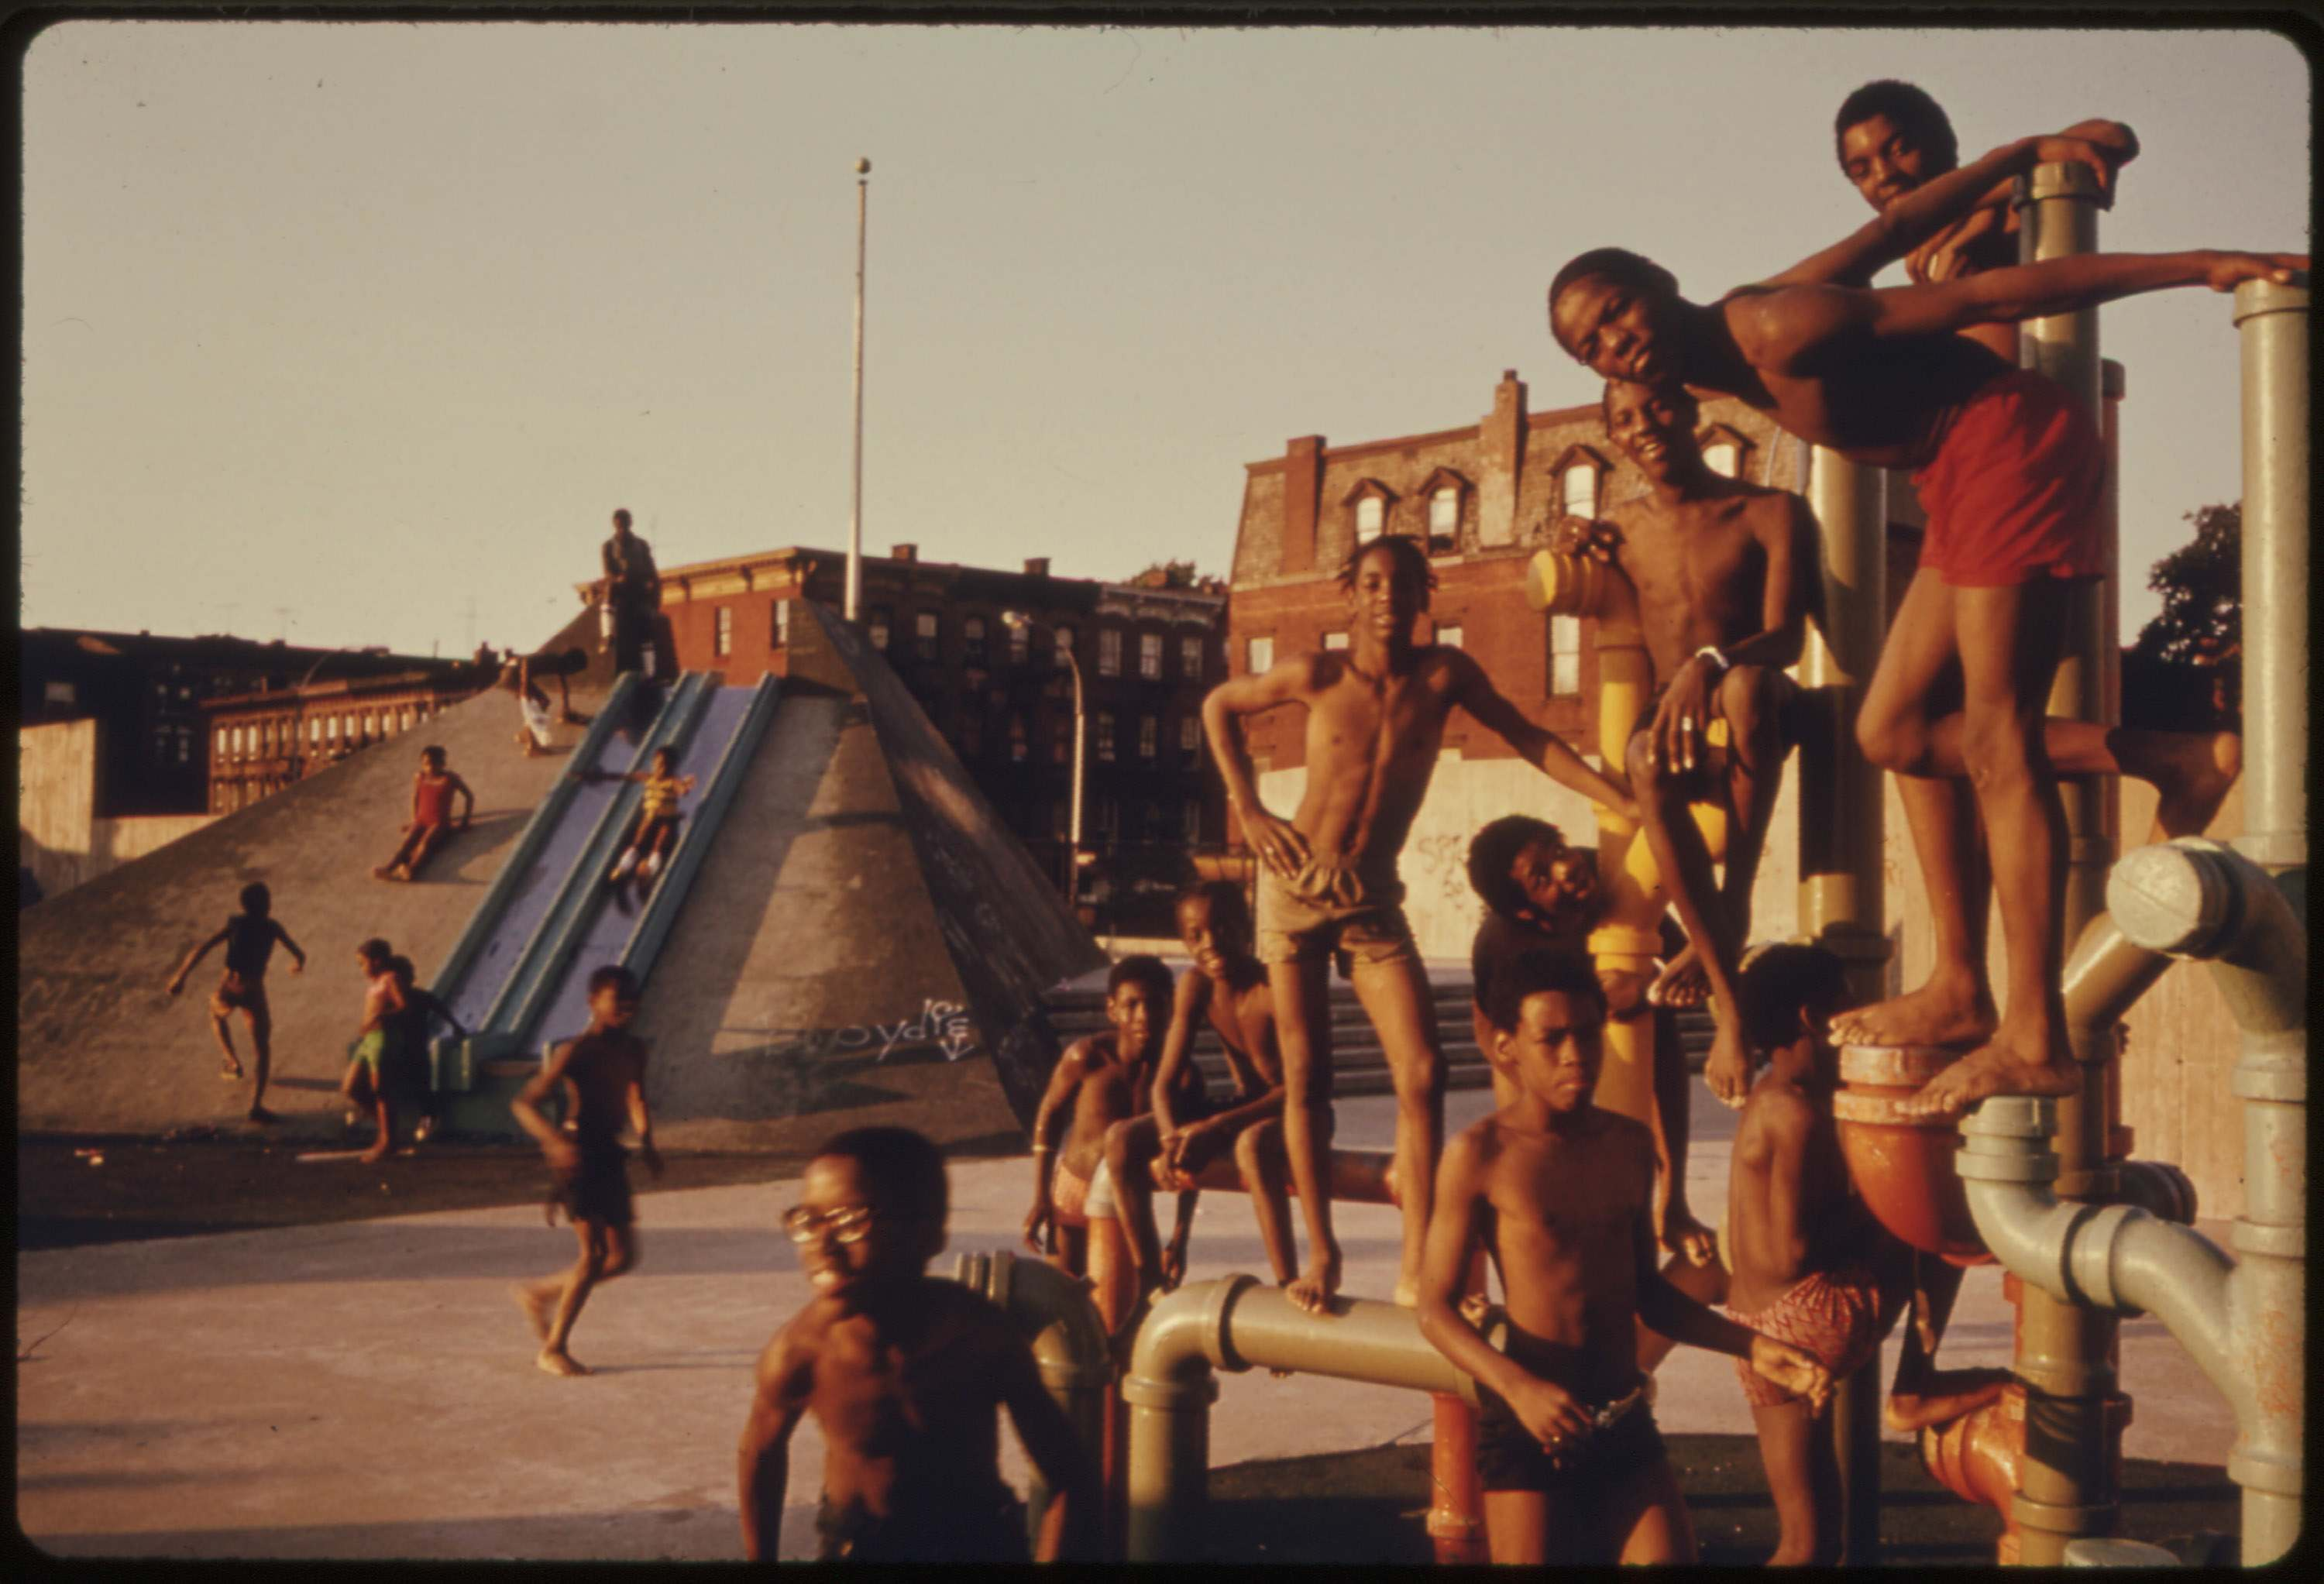 July 4th Holiday at the Kosciusko Swimming Pool in Brooklyn's Bedford-Stuyvesant District, July 1974. Documerica: Danny Lyon's Photos of New York City in the Summer of 1974